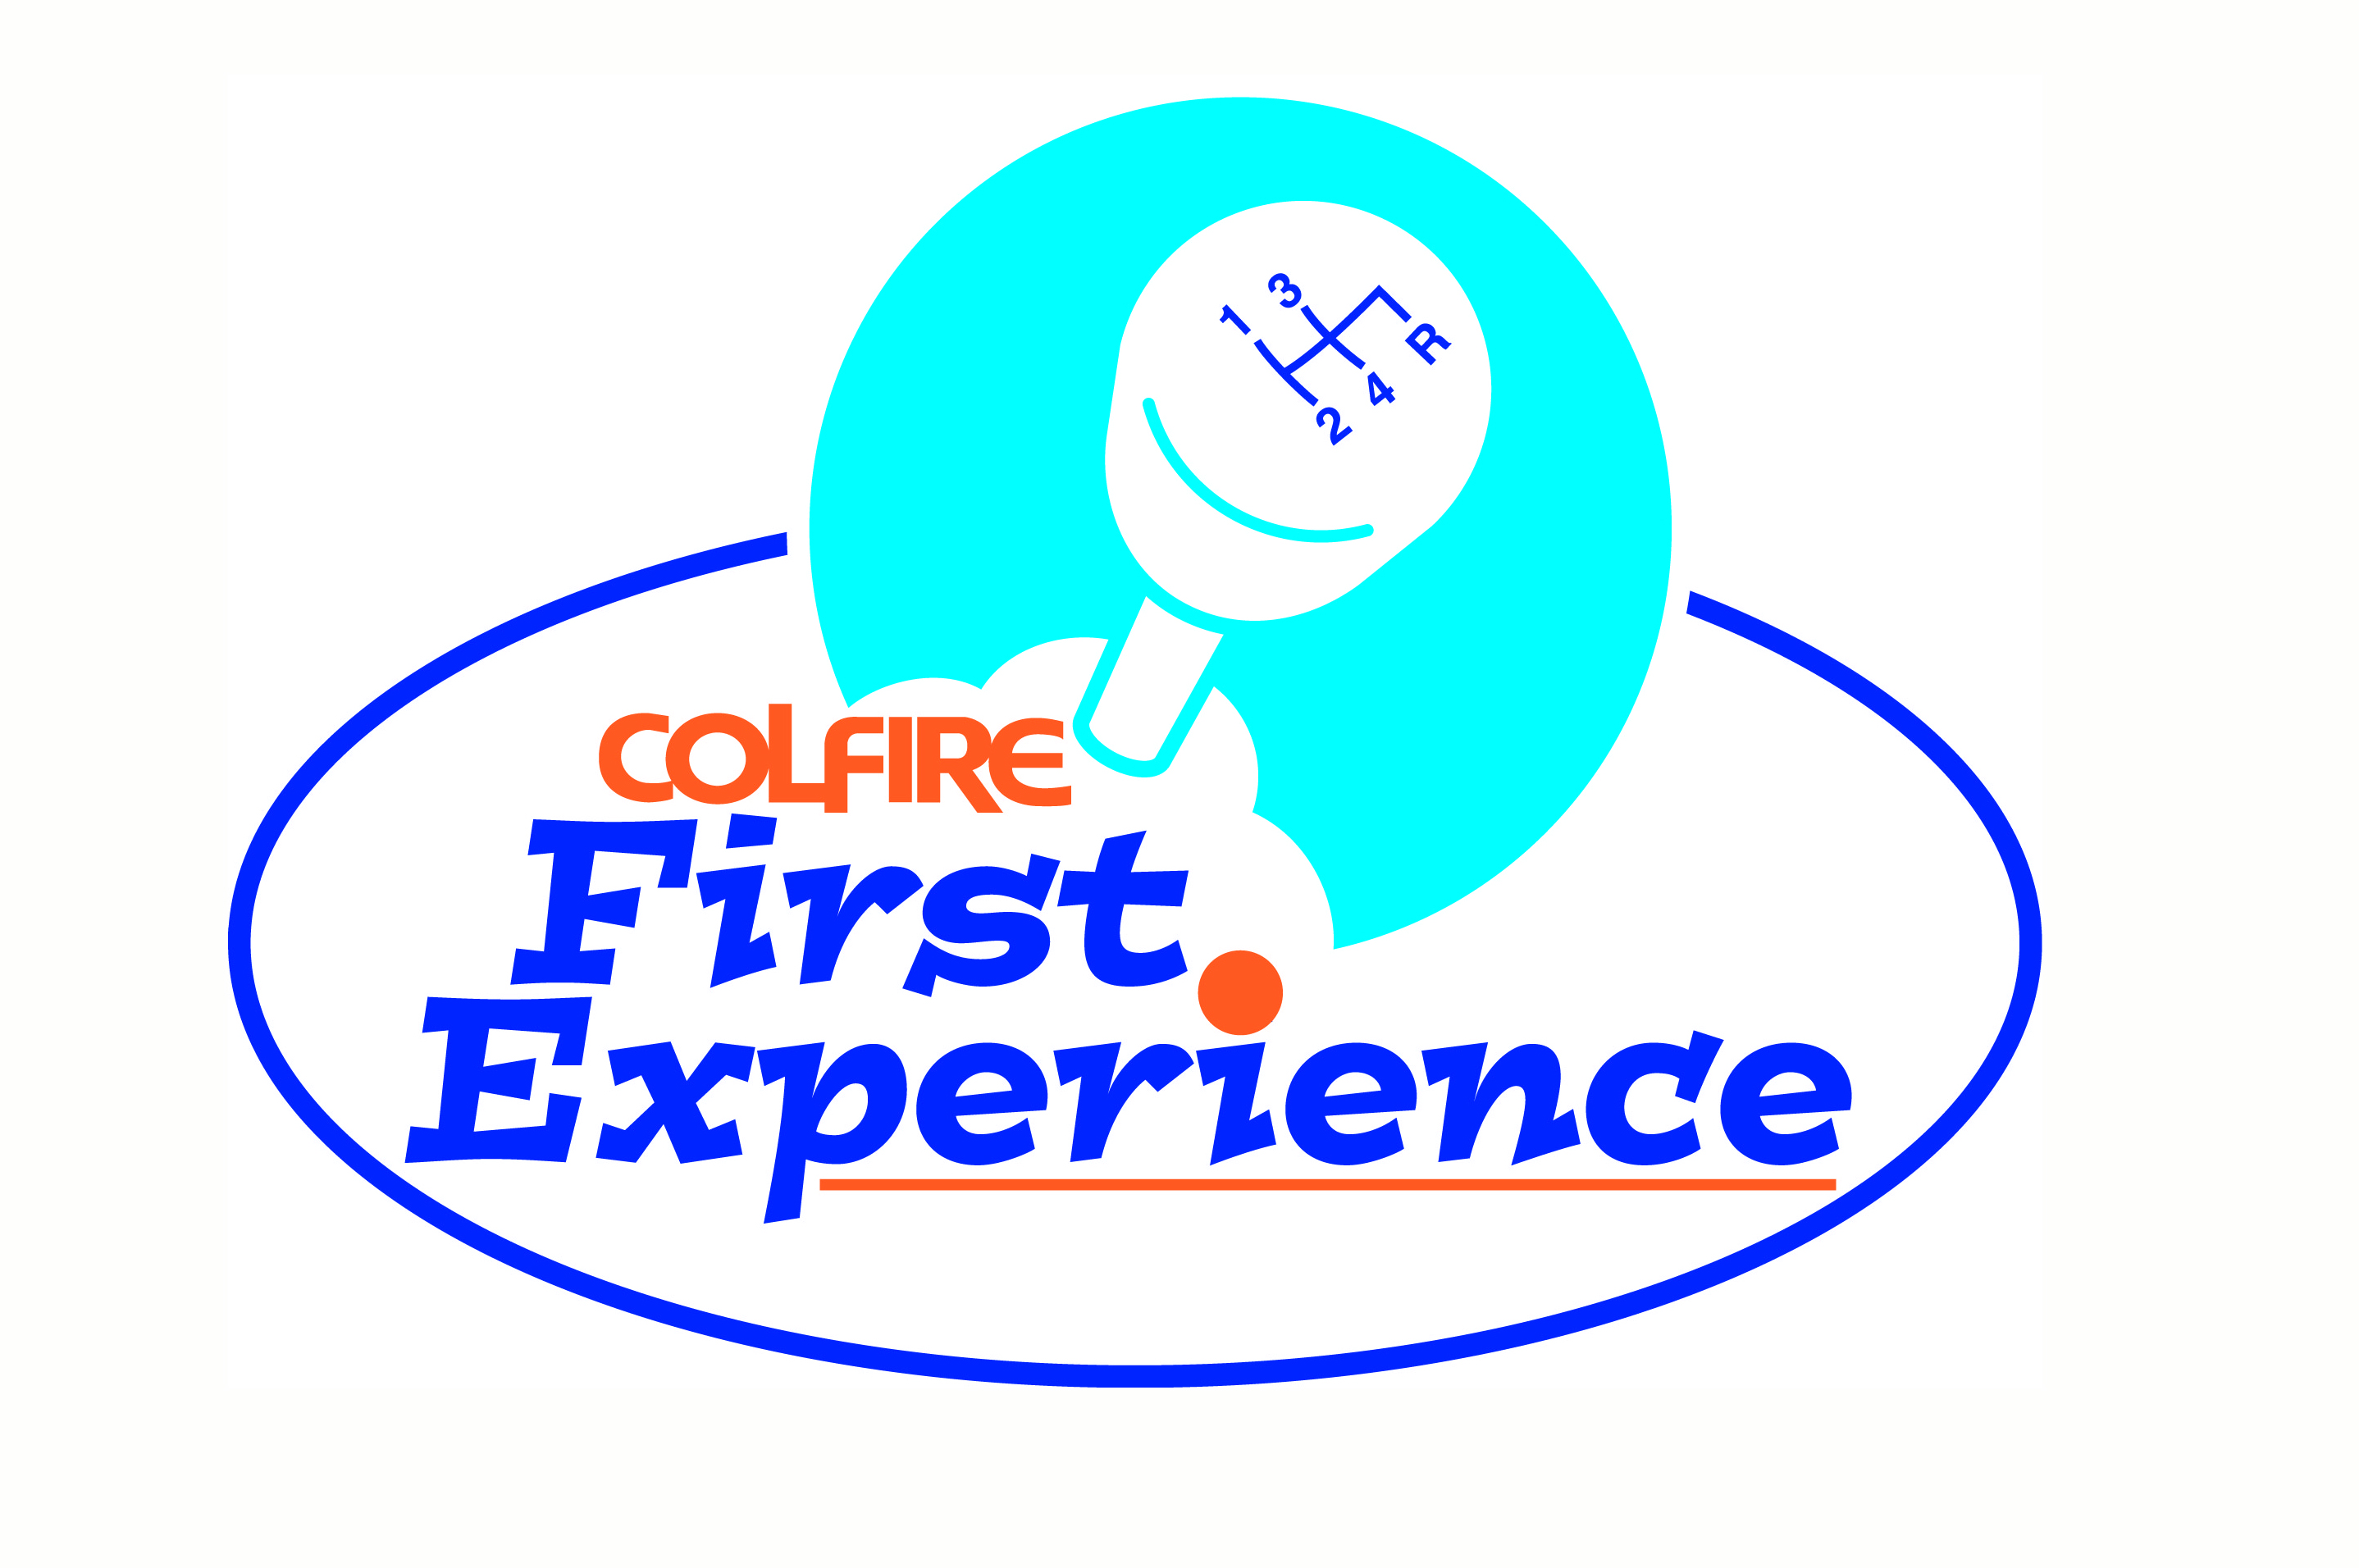 Colfire first experience Logo.jpg